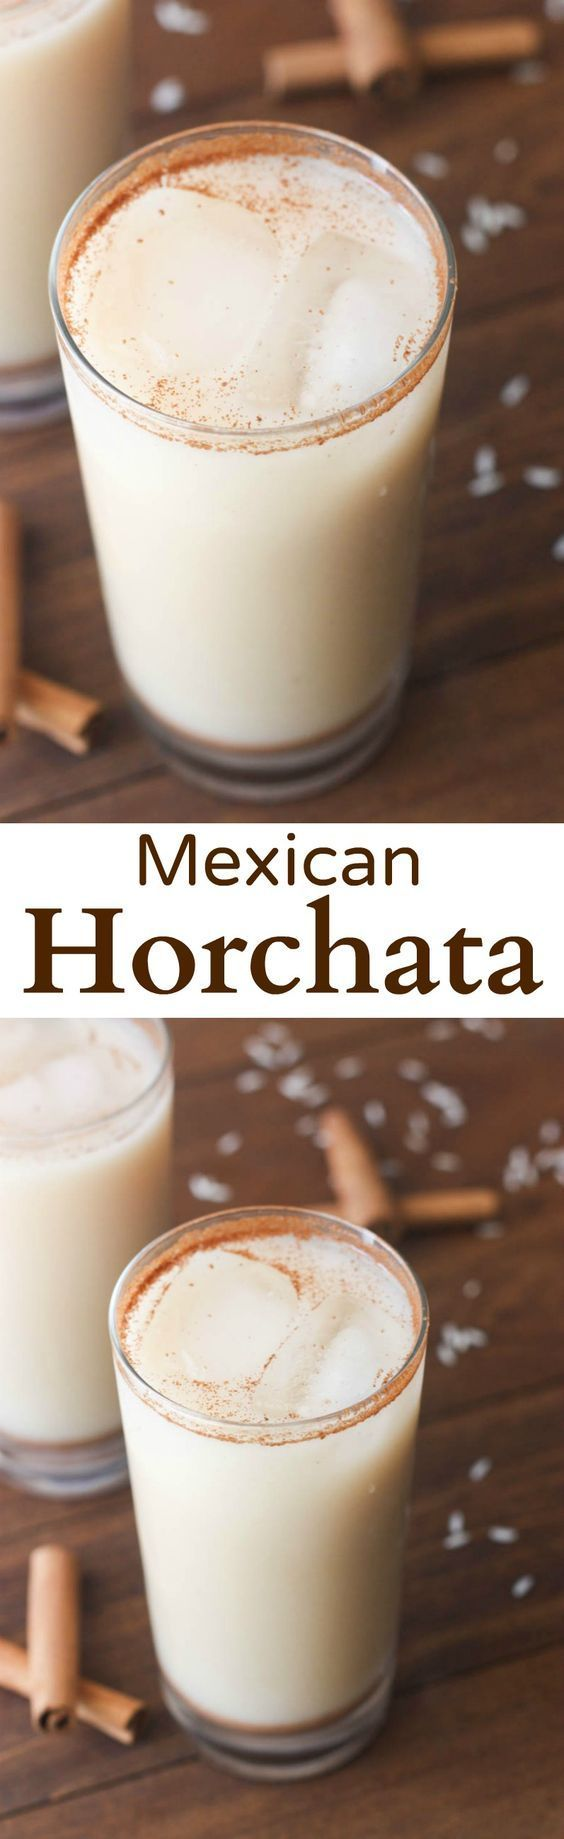 The easiest, creamy and slightly sweet homemade Authentic Mexican Horchata. It's almost Cinco de Mayo guys! A good excuse to throw a party with your friends and make some awesome homemade Mexican food! I'll be making several of my favorite Mexican dishes, particularly Authentic Mexican Rice and Cantina-Style Salsa.I've found that my way of judging... Read More »: